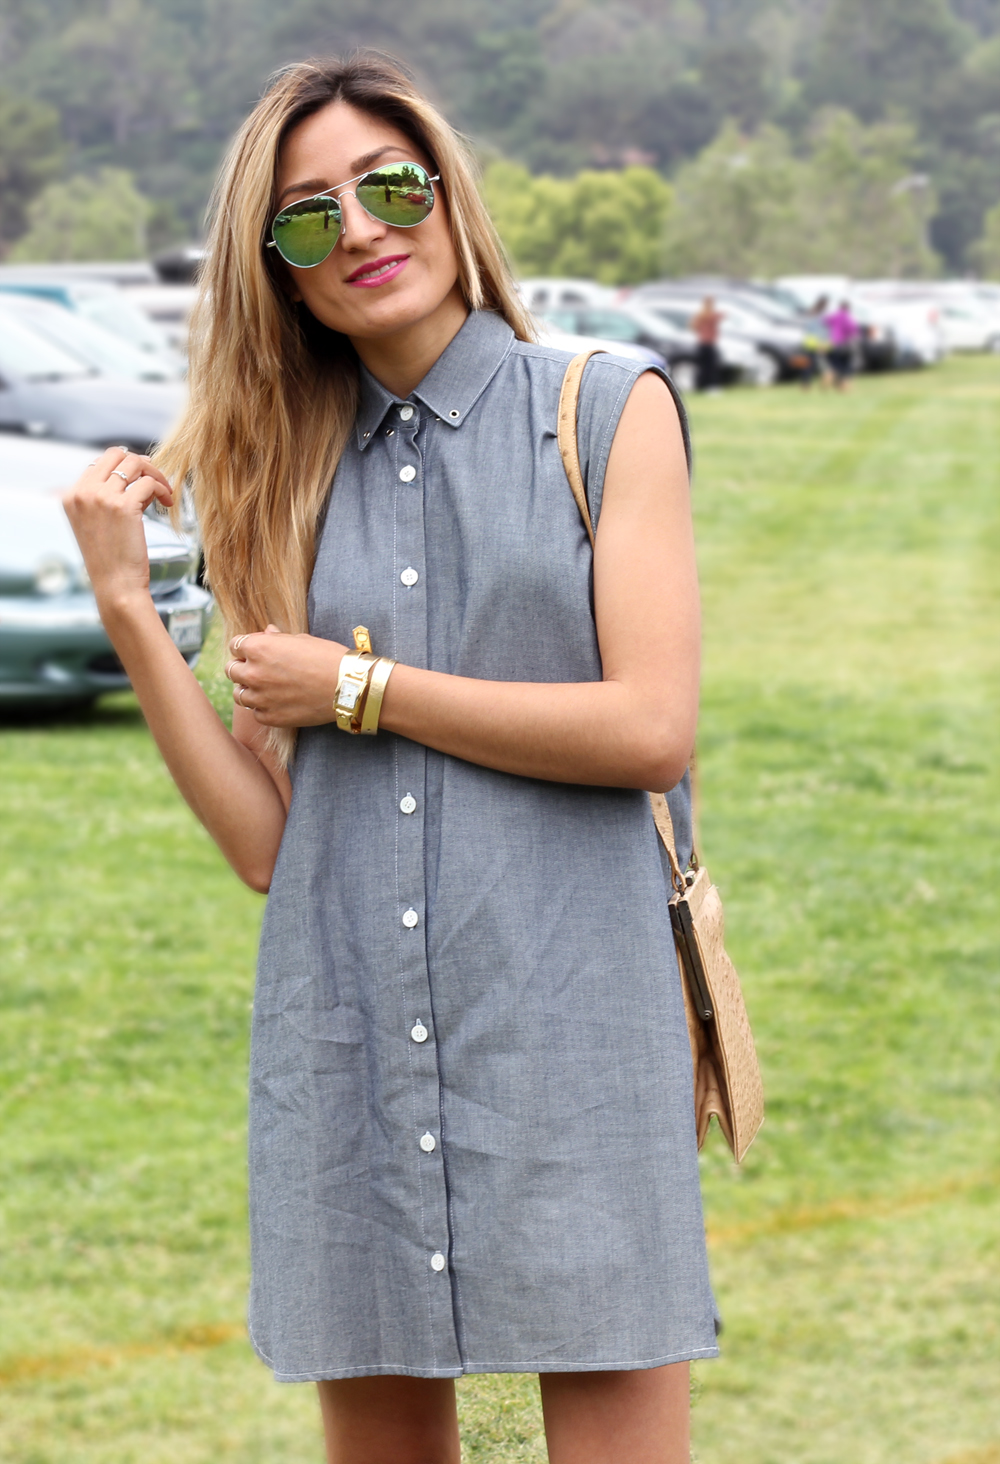 In My Air, Sleeveles, Chambray, Sandals, Spring, Outfit, ZeroUV, Trending